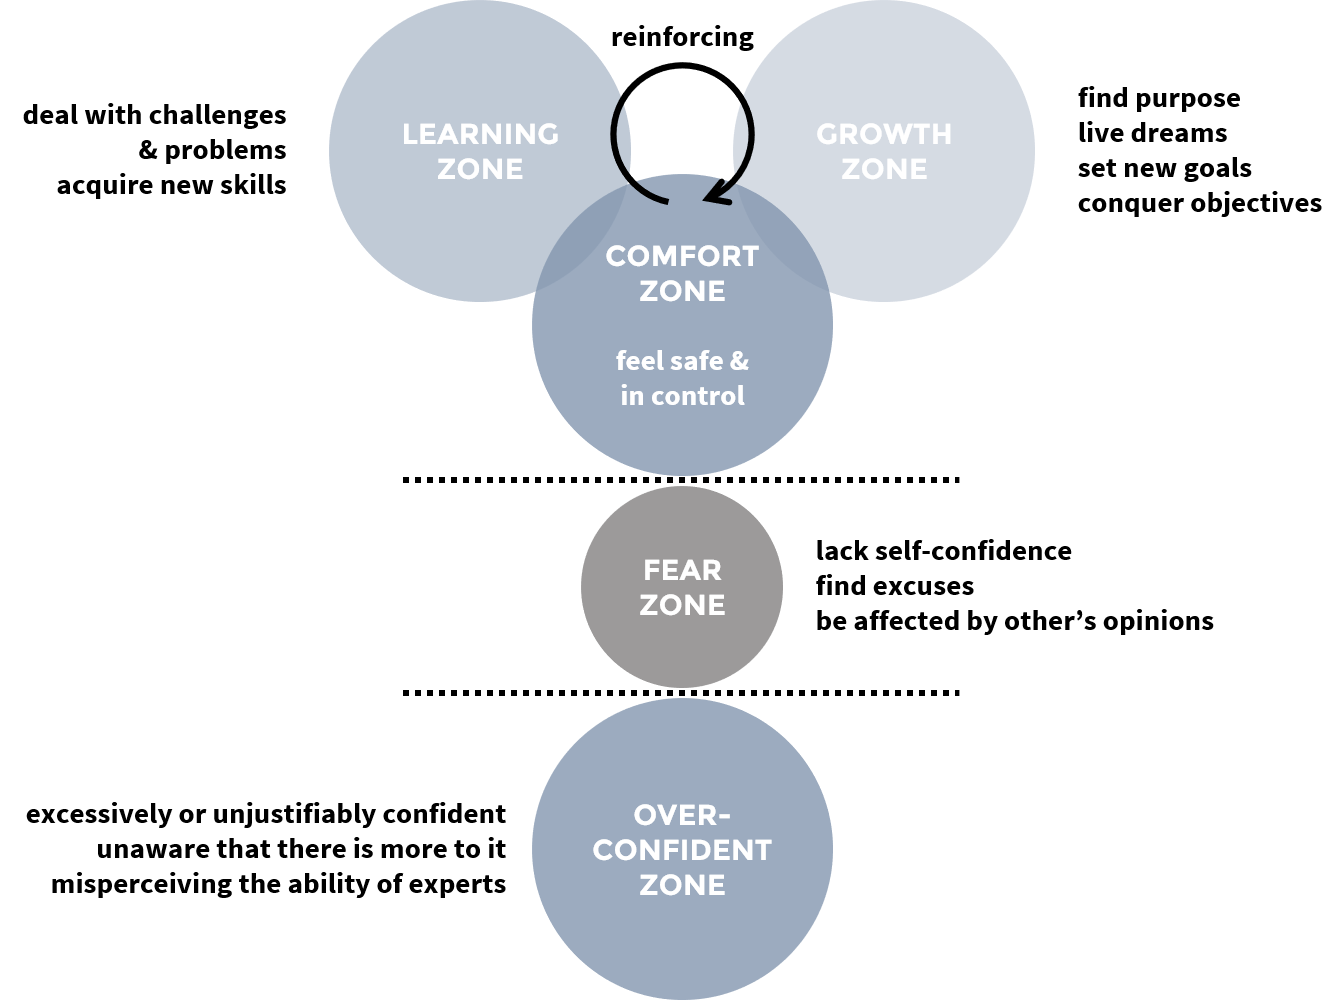 comfort fear growth learning zone personal development STRATZR